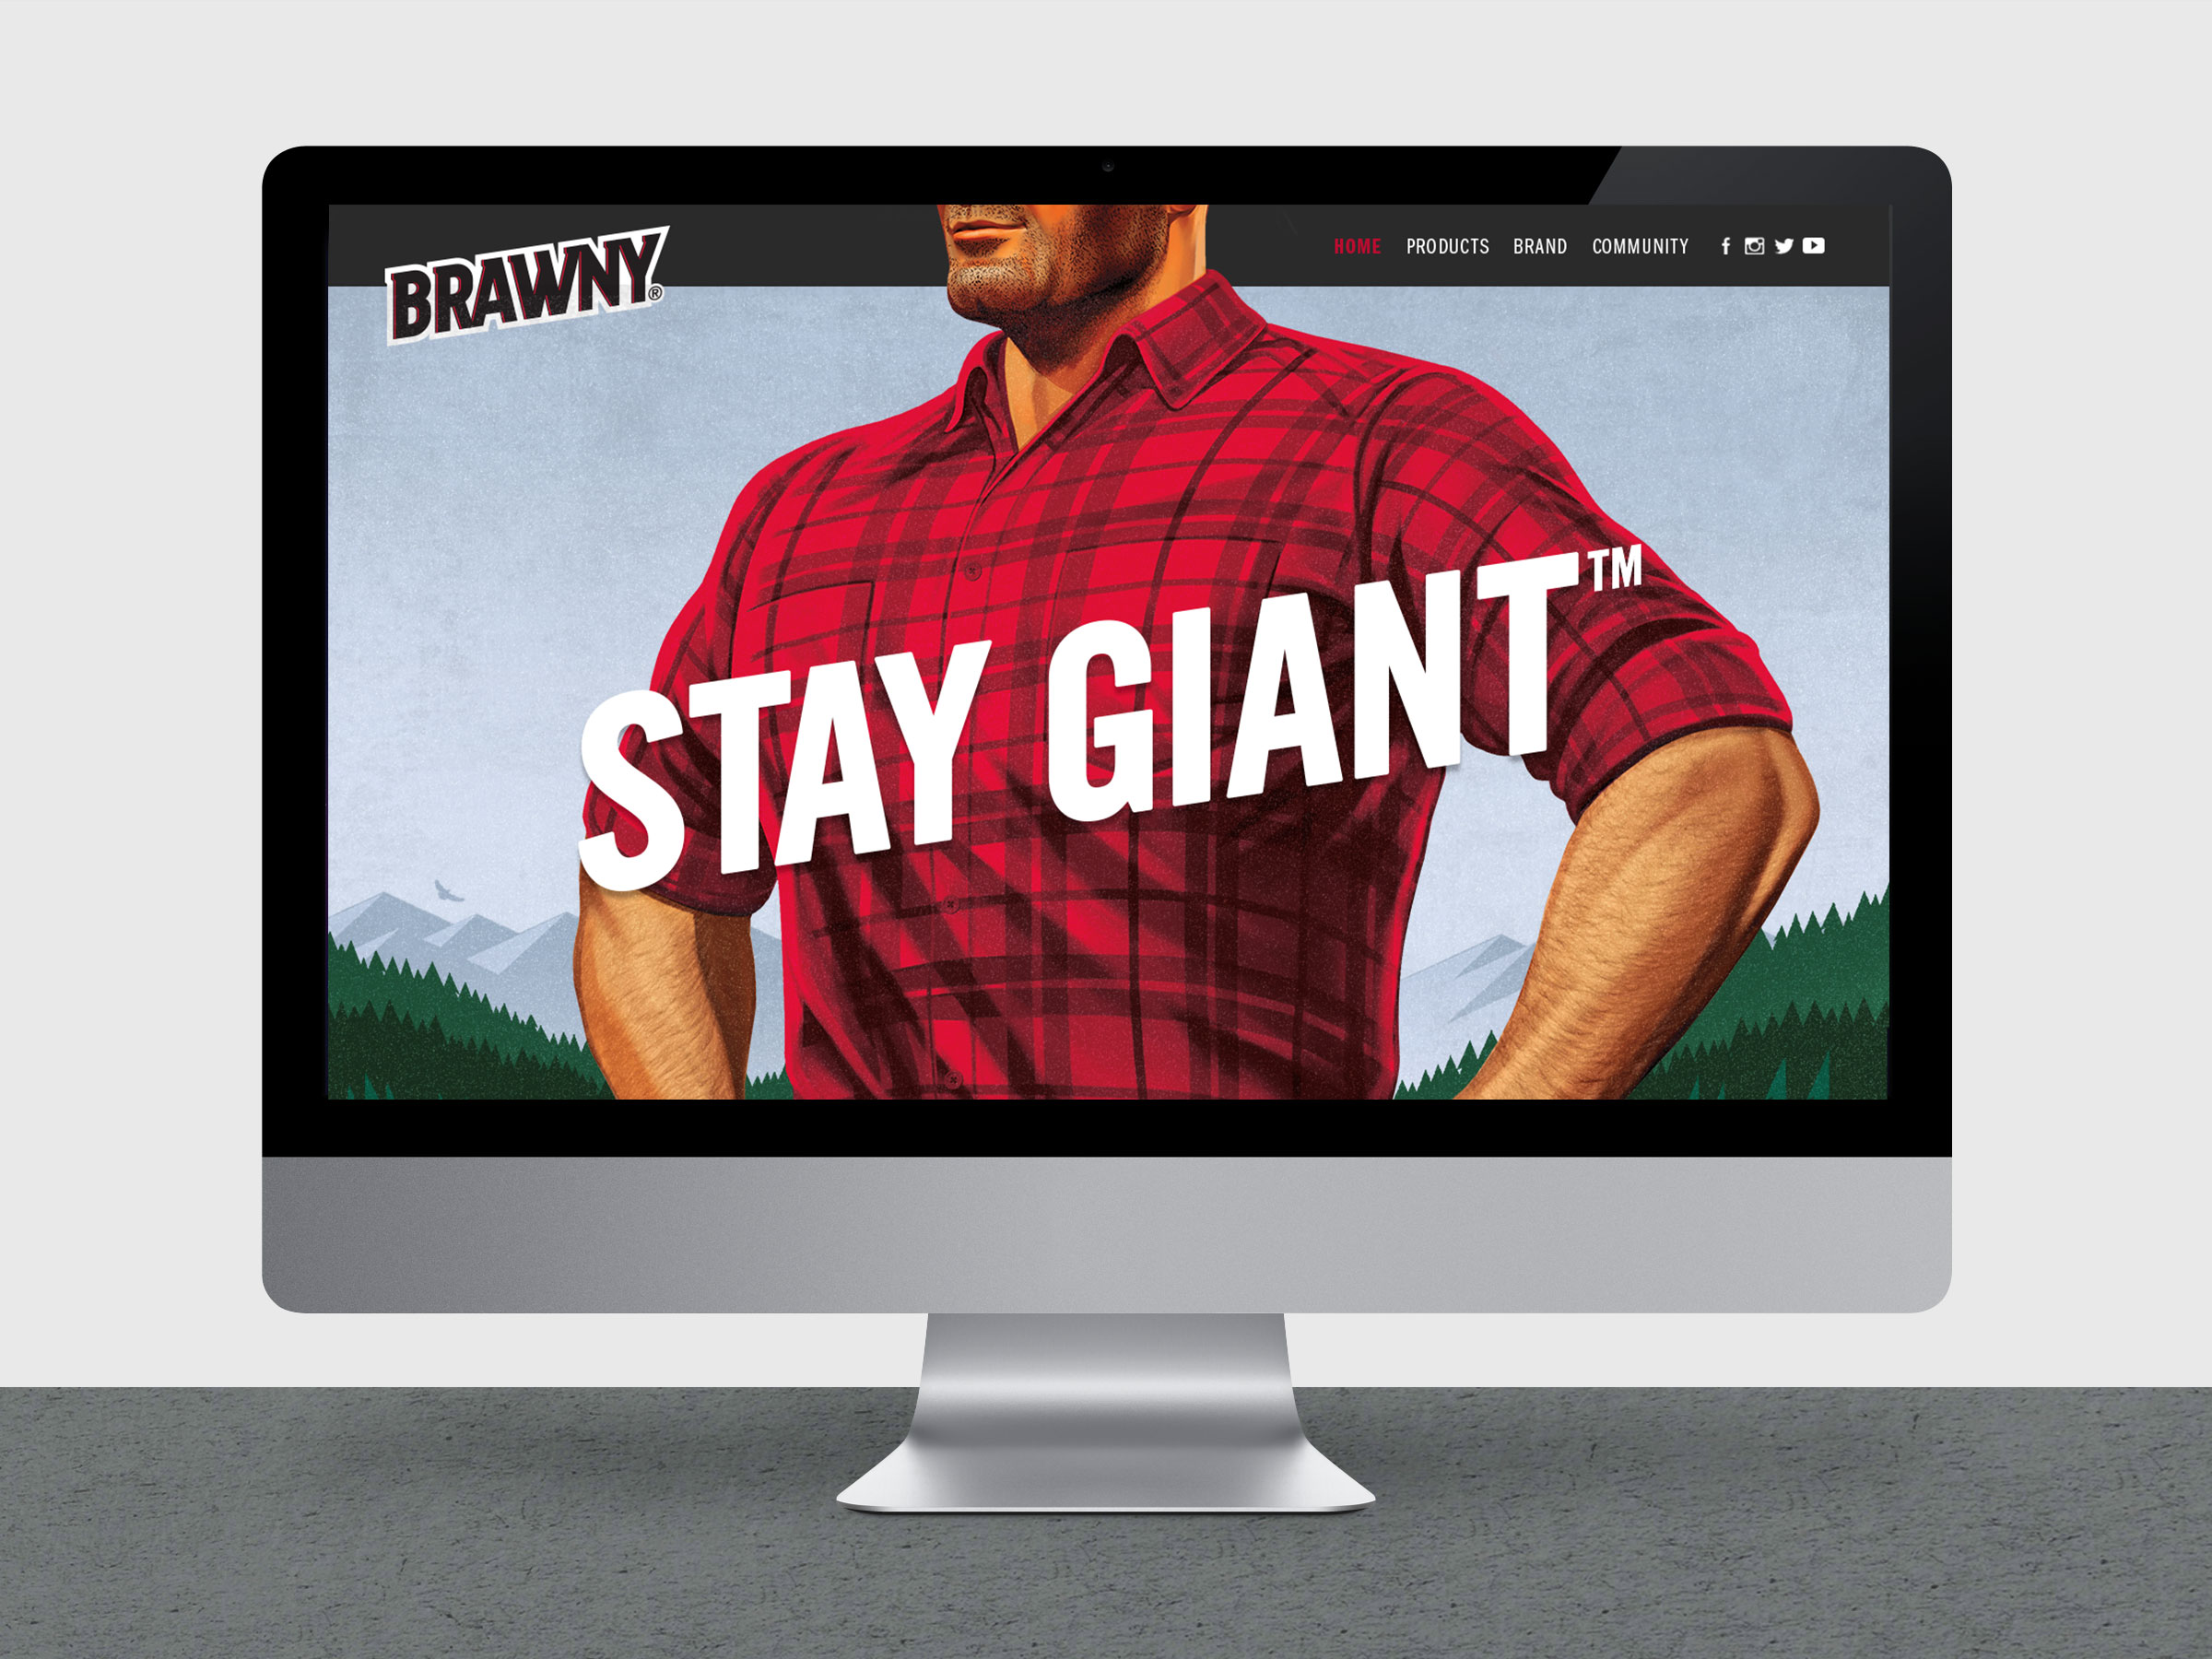 Brawny_Stay_Giant_Website